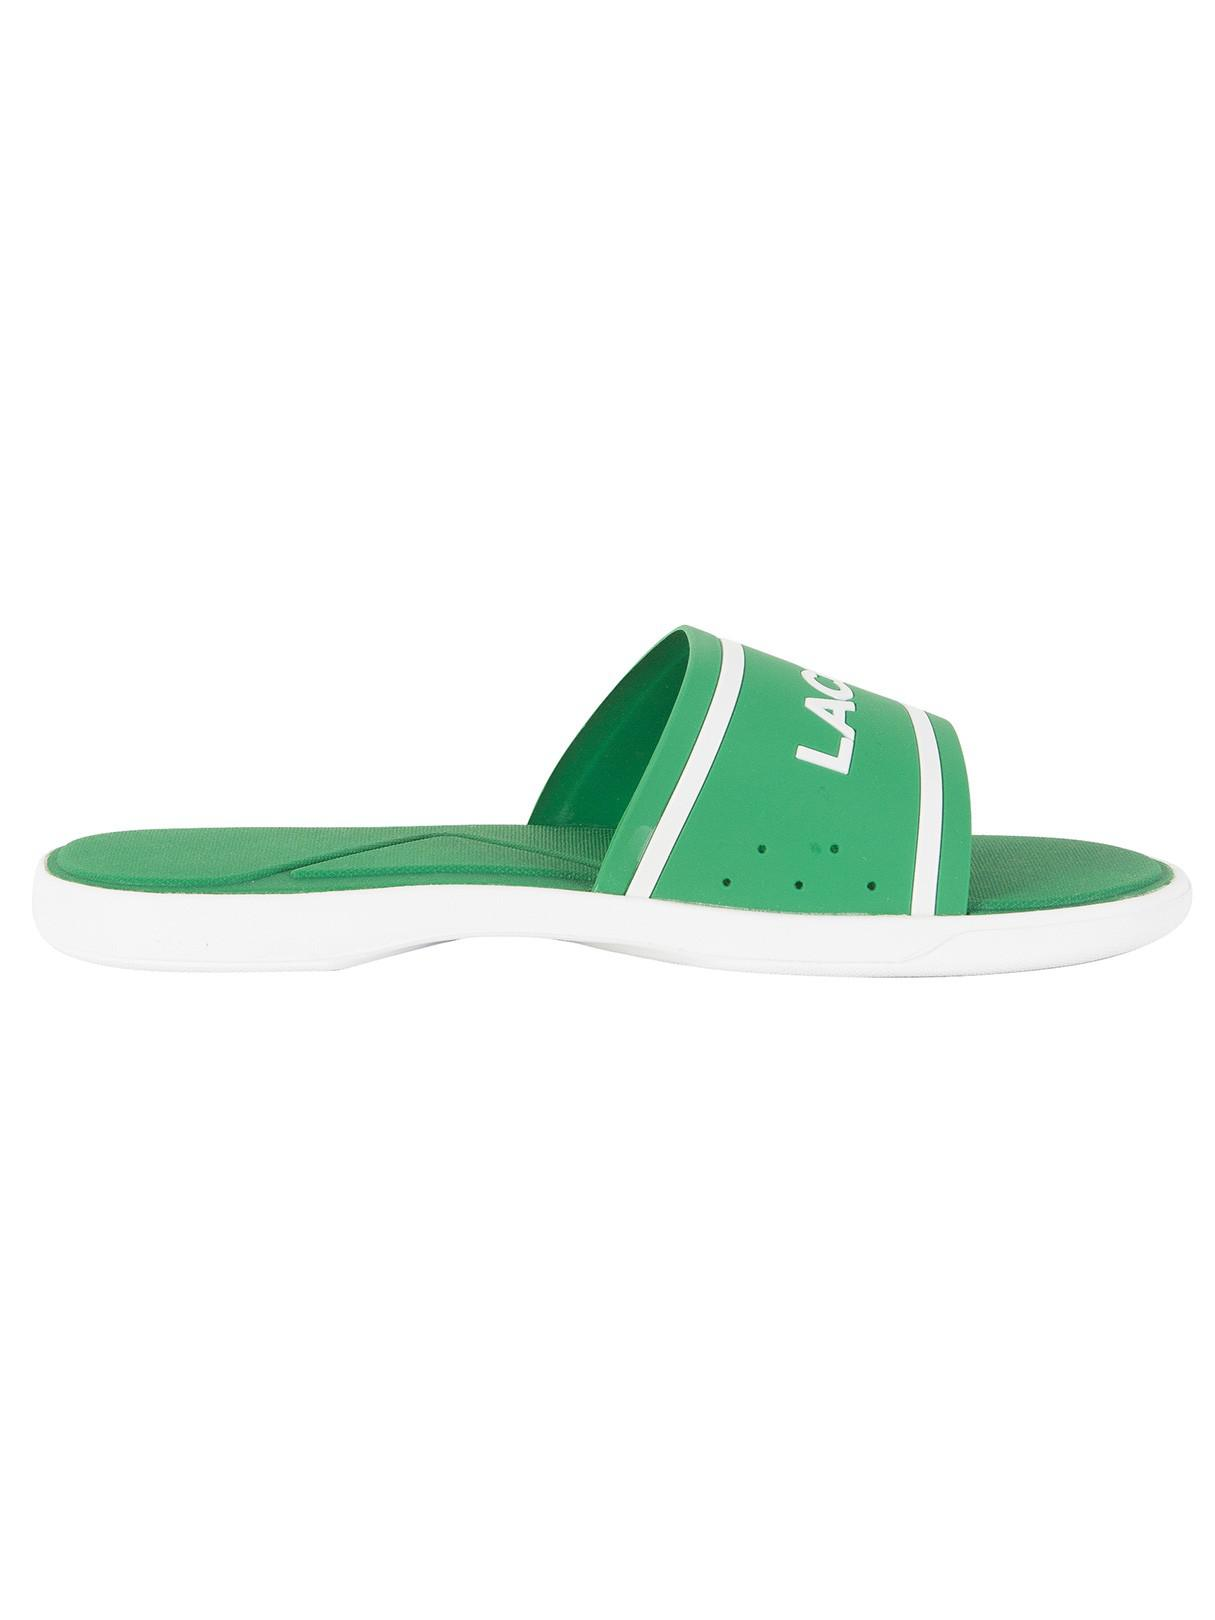 38e233577a33f Lyst - Lacoste Green white L.30 Slide 118 3 Cam Flip Flops in Green ...